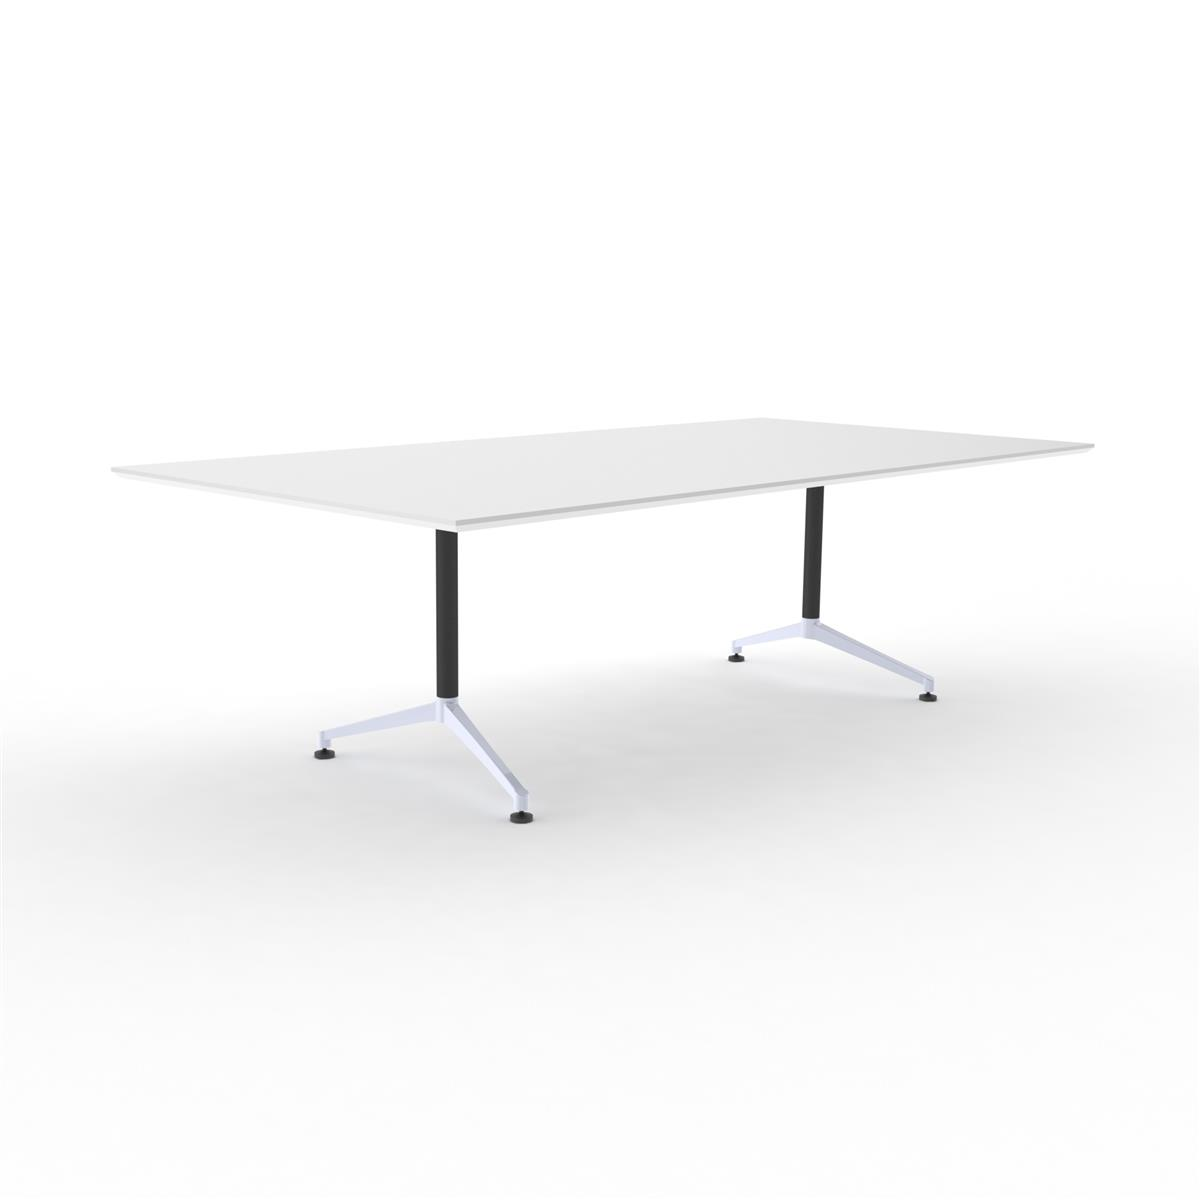 X1 Seamless Table 240 x 120 cm med hvit bordplate og sort/aluminium understell